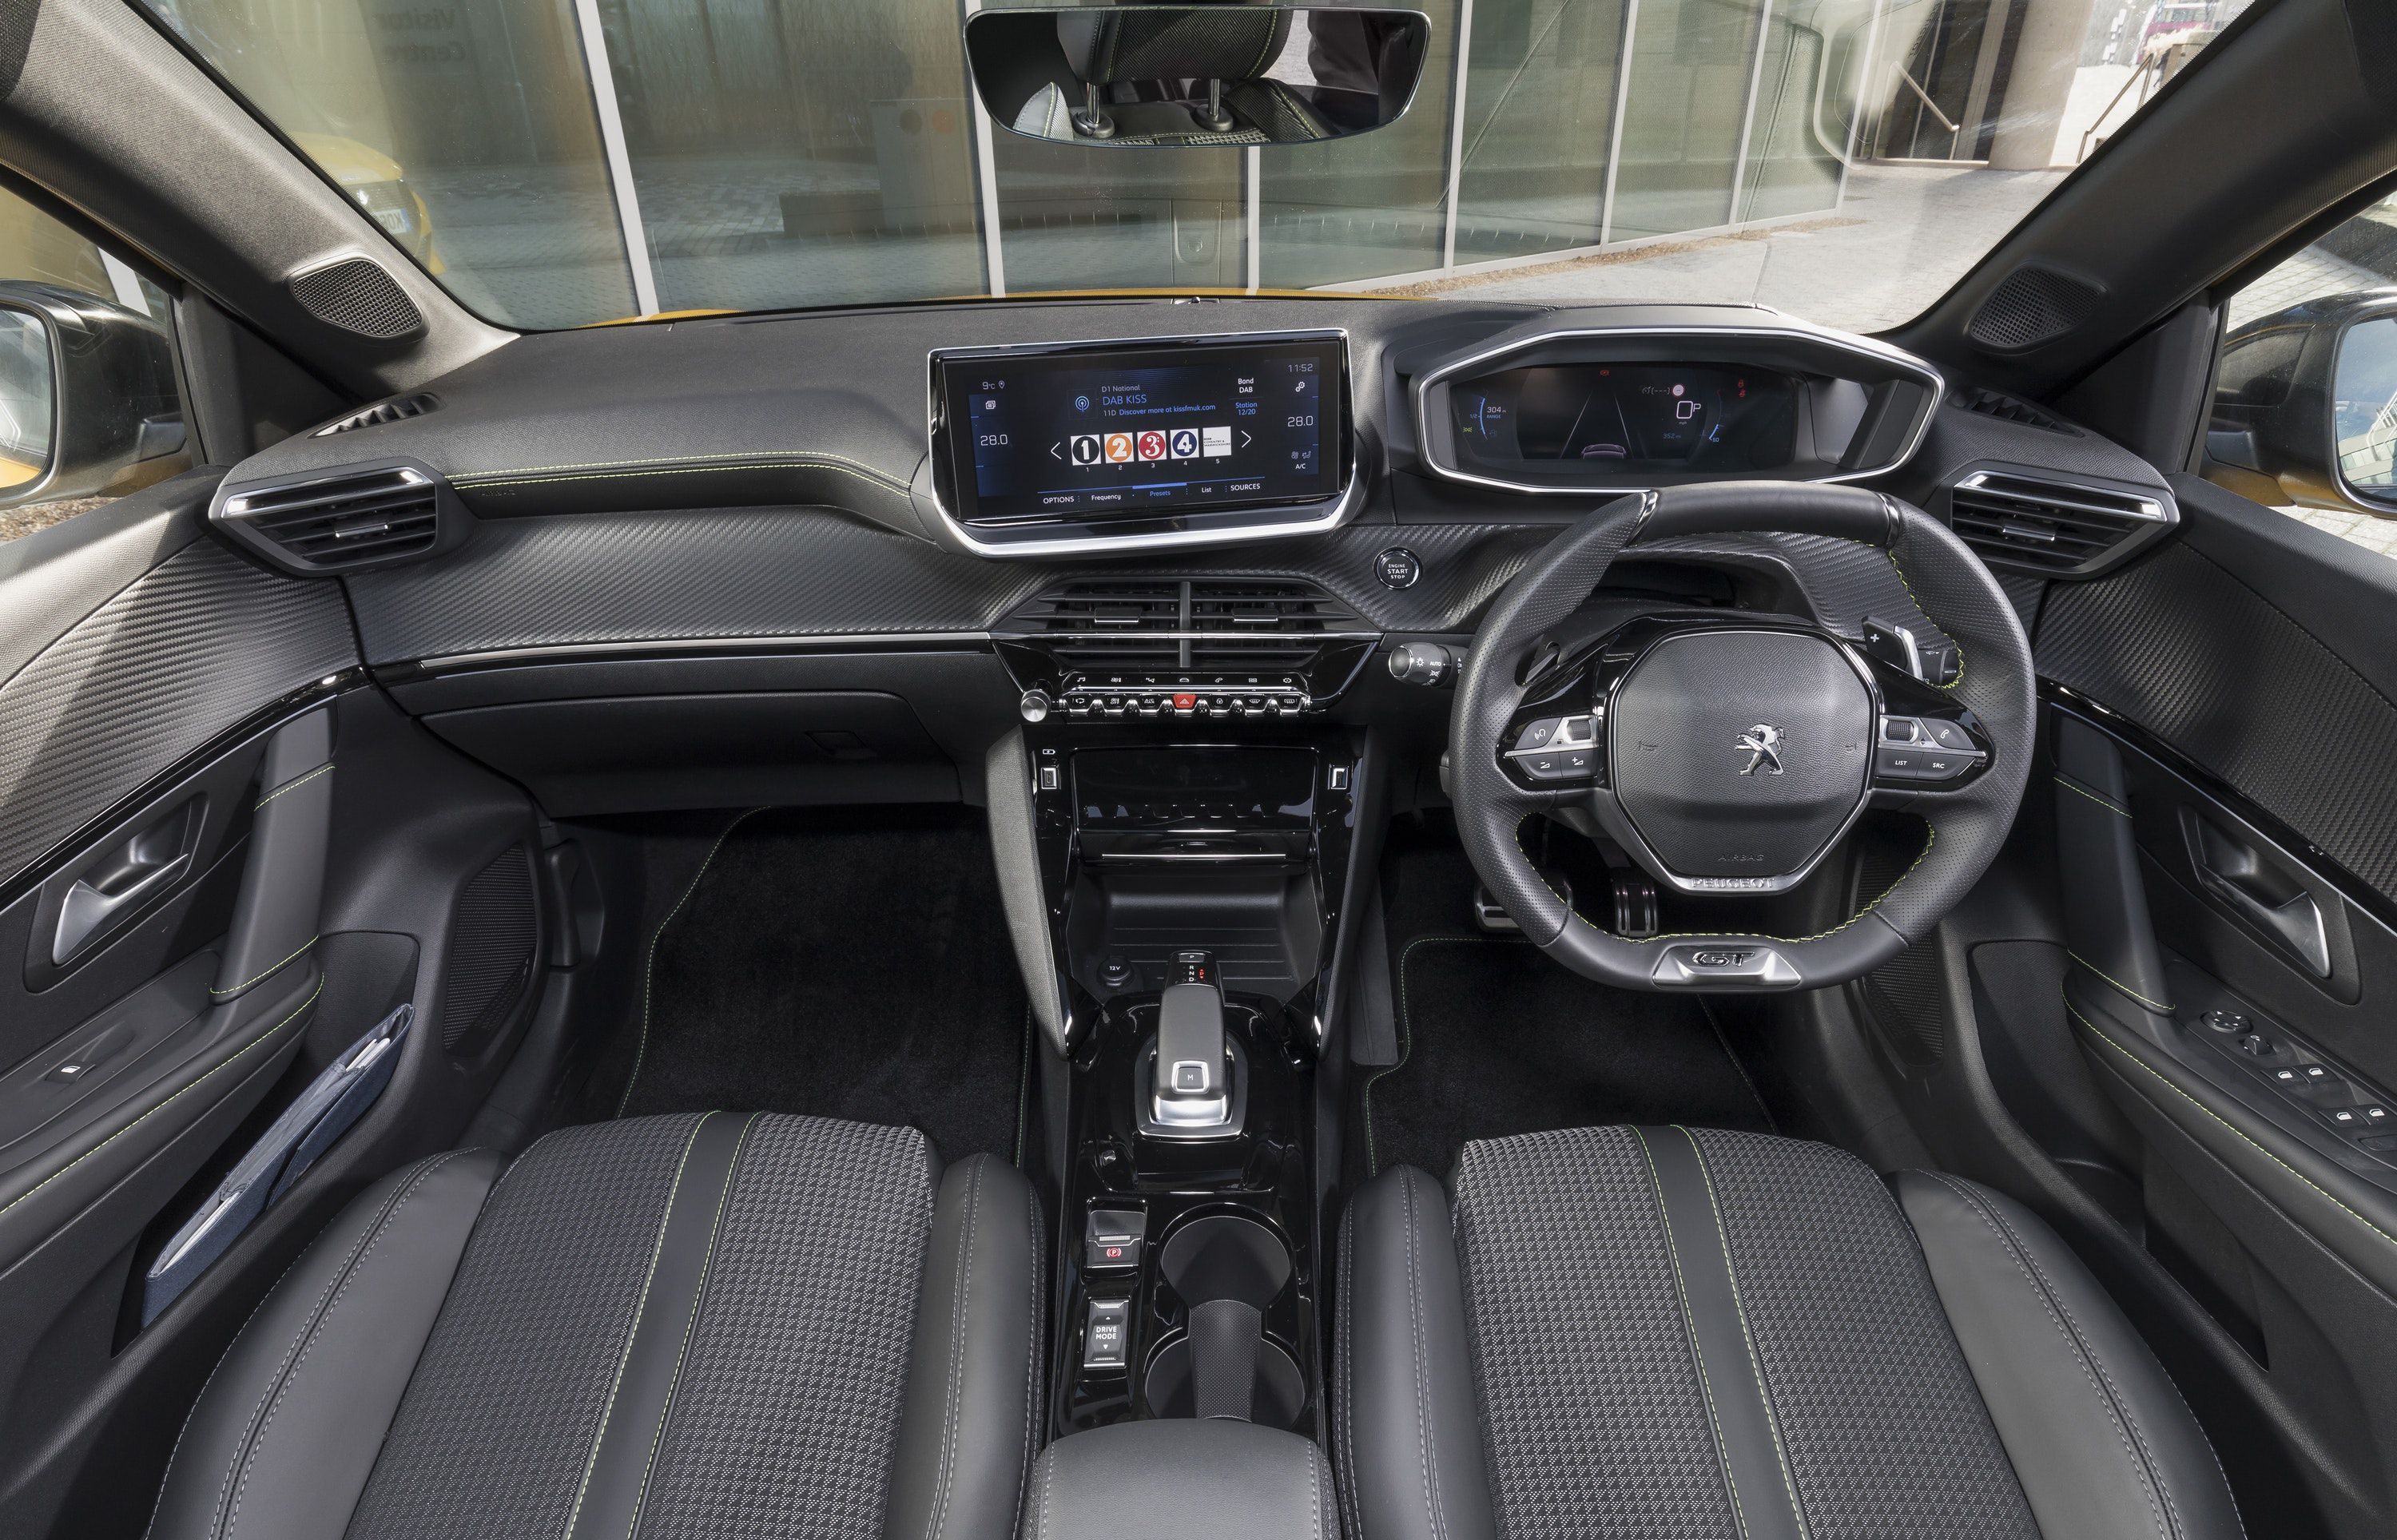 Front of the 208 interior with i-cockpit